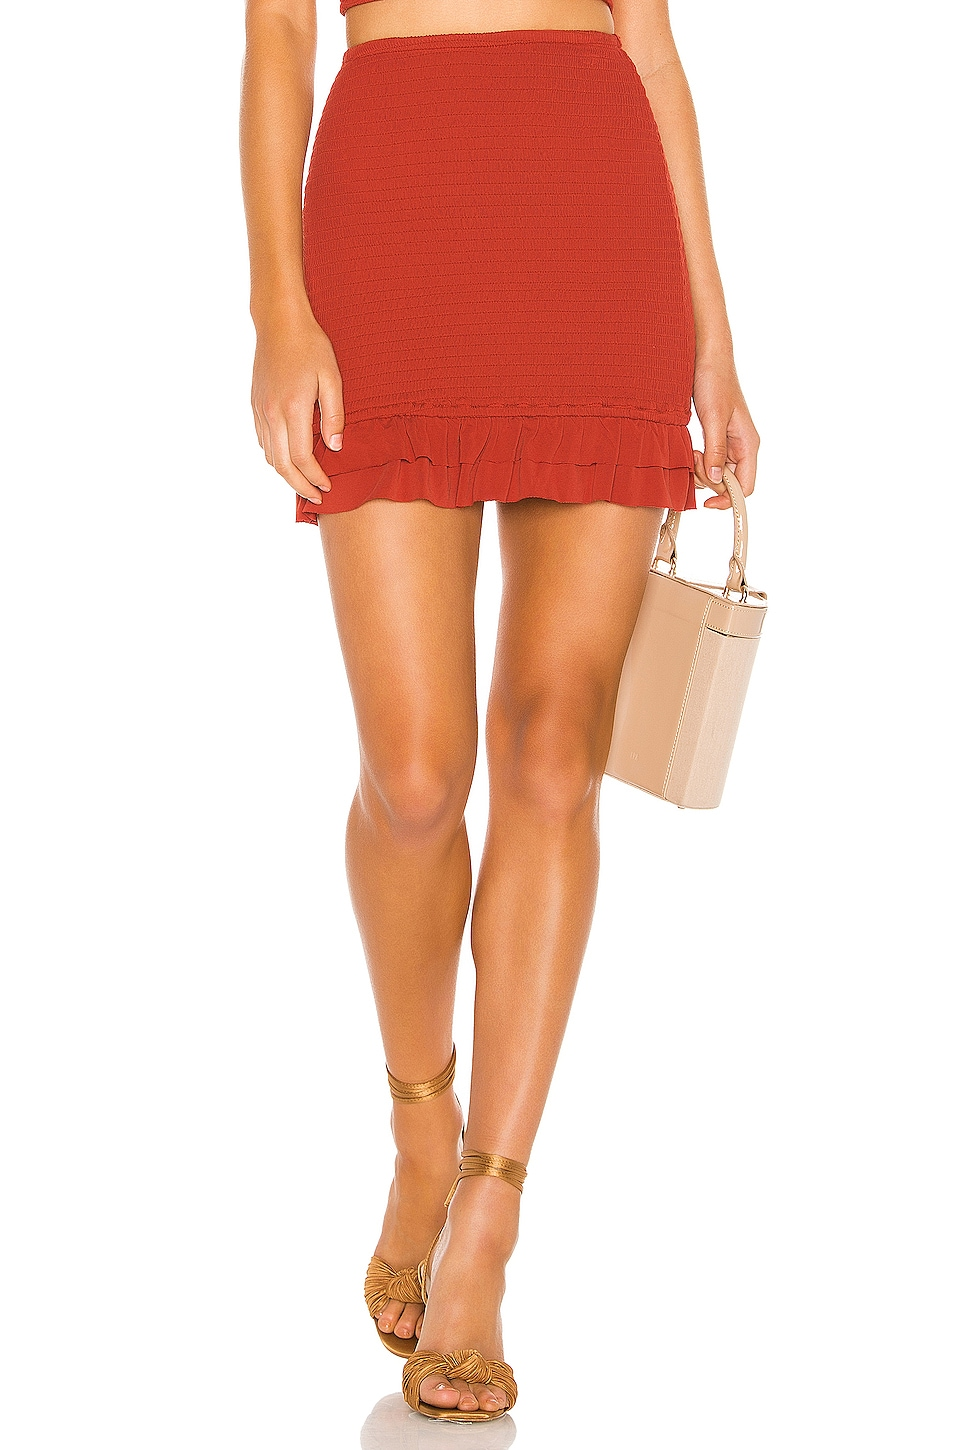 Privacy Please Gwen Mini Skirt in Coral